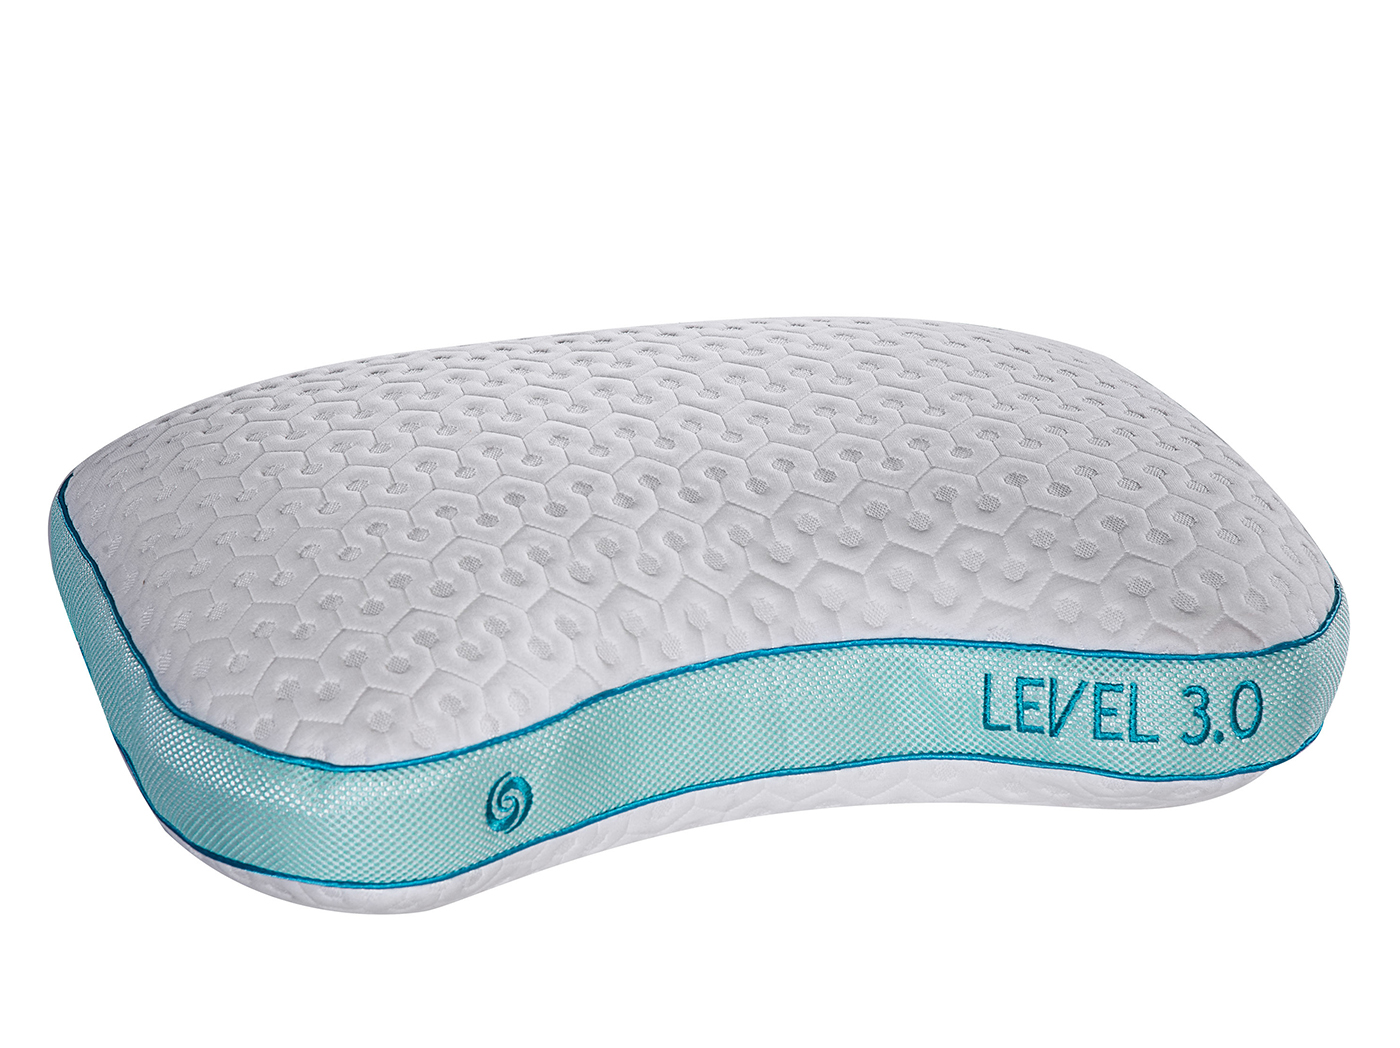 Level 3.0 Personal Pillow